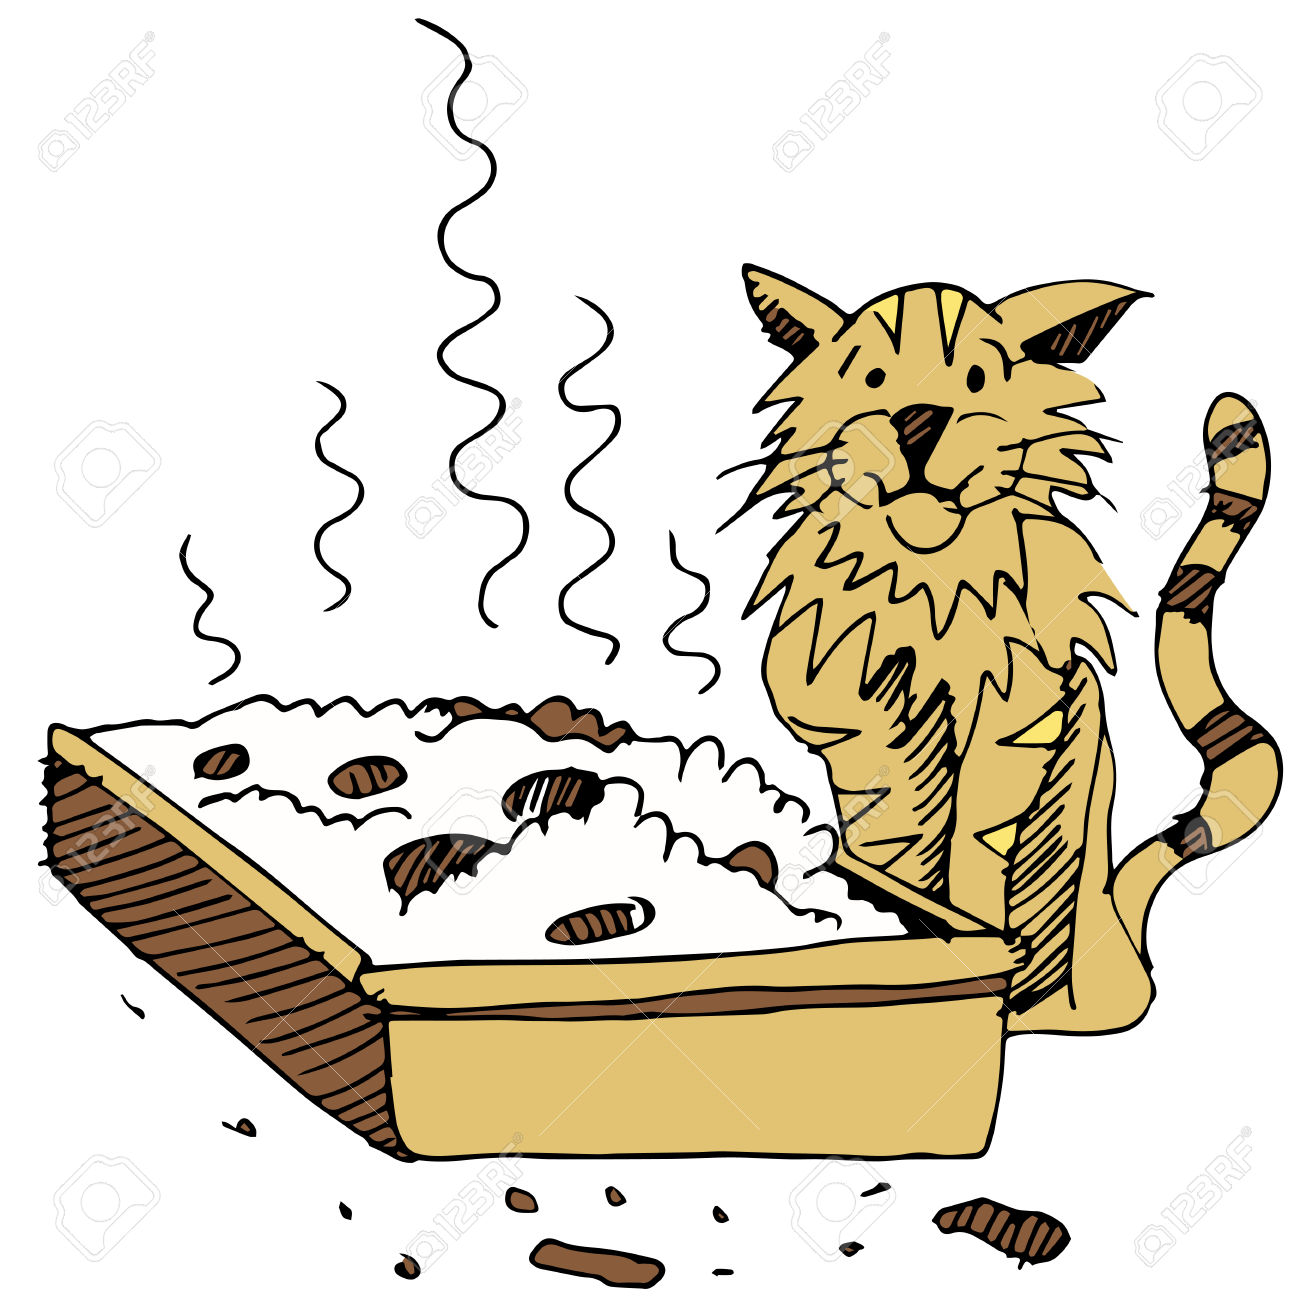 An Image Of A Dirty Litter Box And Cat. Royalty Free Cliparts.